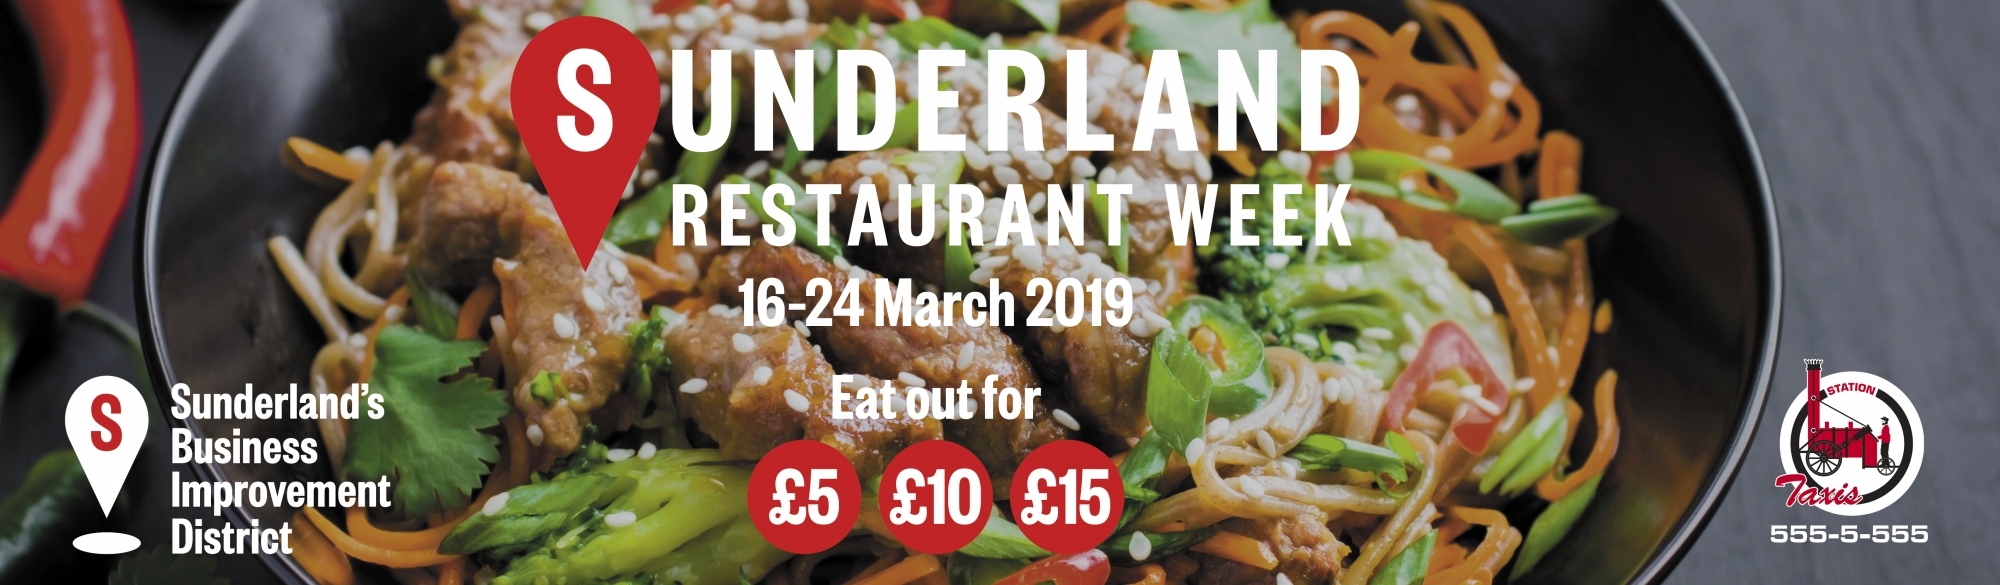 Sunderland Restaurant Week